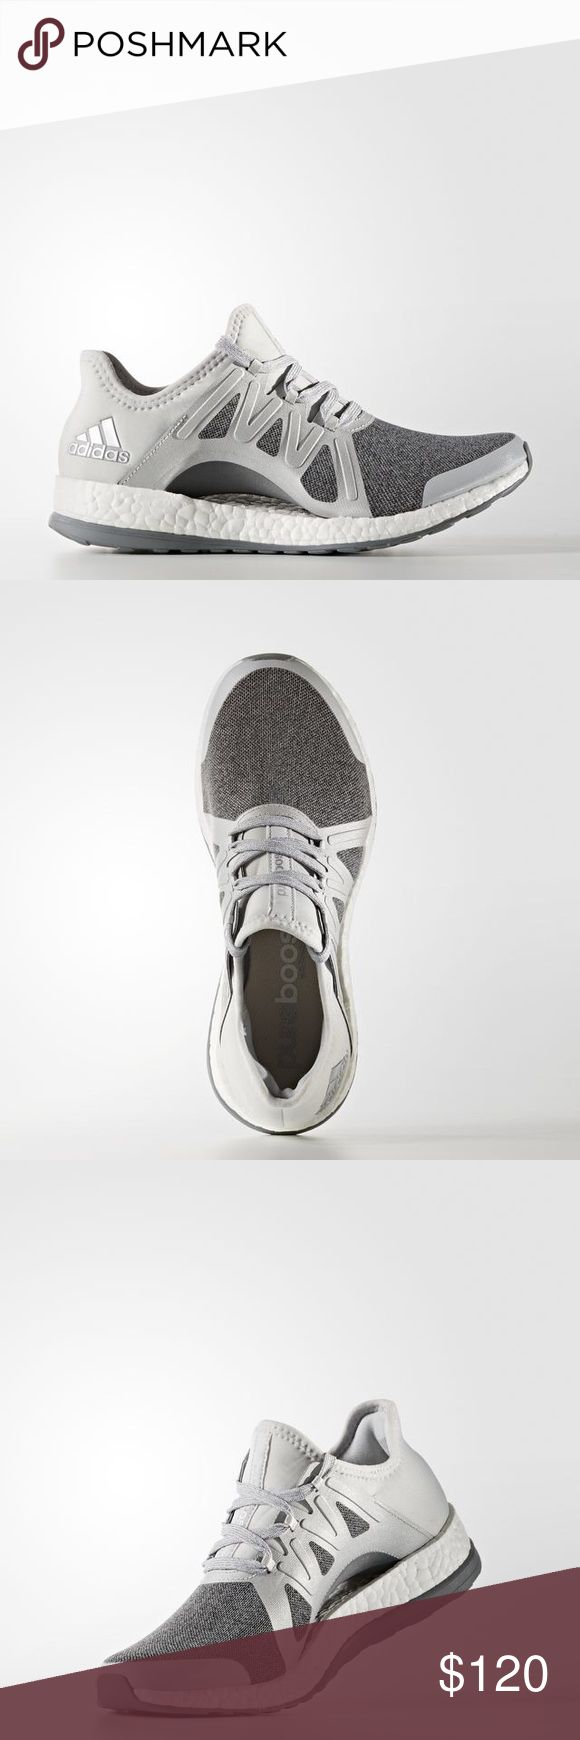 "Adidas PureBoost Xpose Shoes Grey/silver/white colorway in the ever-popular Adidas PureBoost sneaker. From Adidas: ""These women's running shoes combine style and performance for a winning combination. Designed to respond to the ways a woman's foot moves as she runs, the shoe's floating arch hugs and adapts your foot from push-off to footstrike. A mesh upper wraps around and underneath the midfoot for a supportive fit and maximum ventilation."" Adidas Shoes Athletic Shoes"